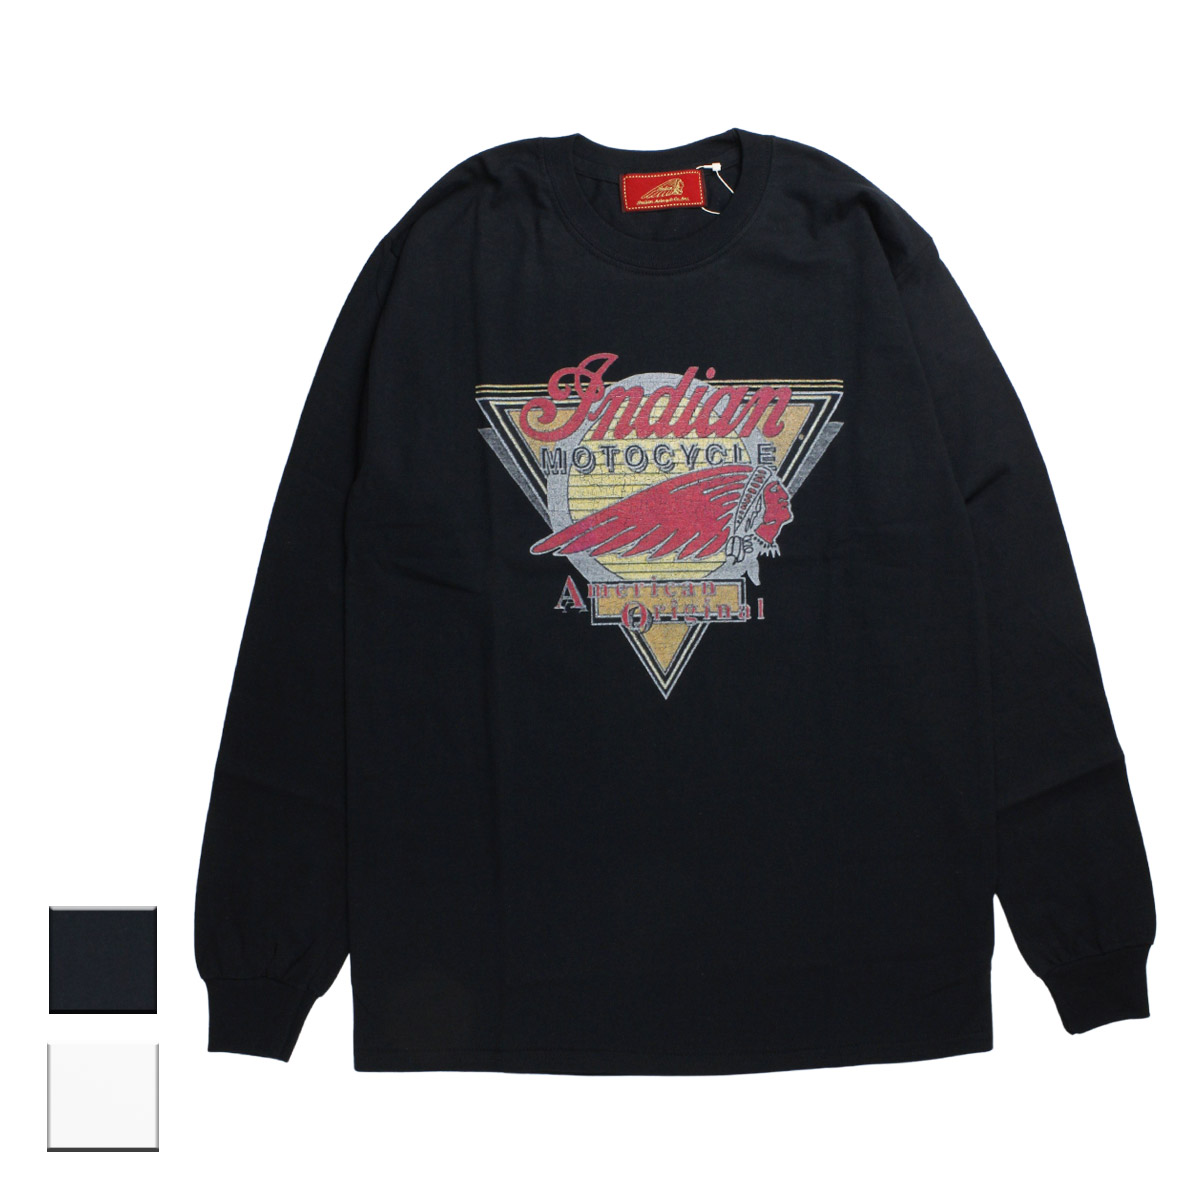 Indian インディアン the Indian is Back L/S-T American Original